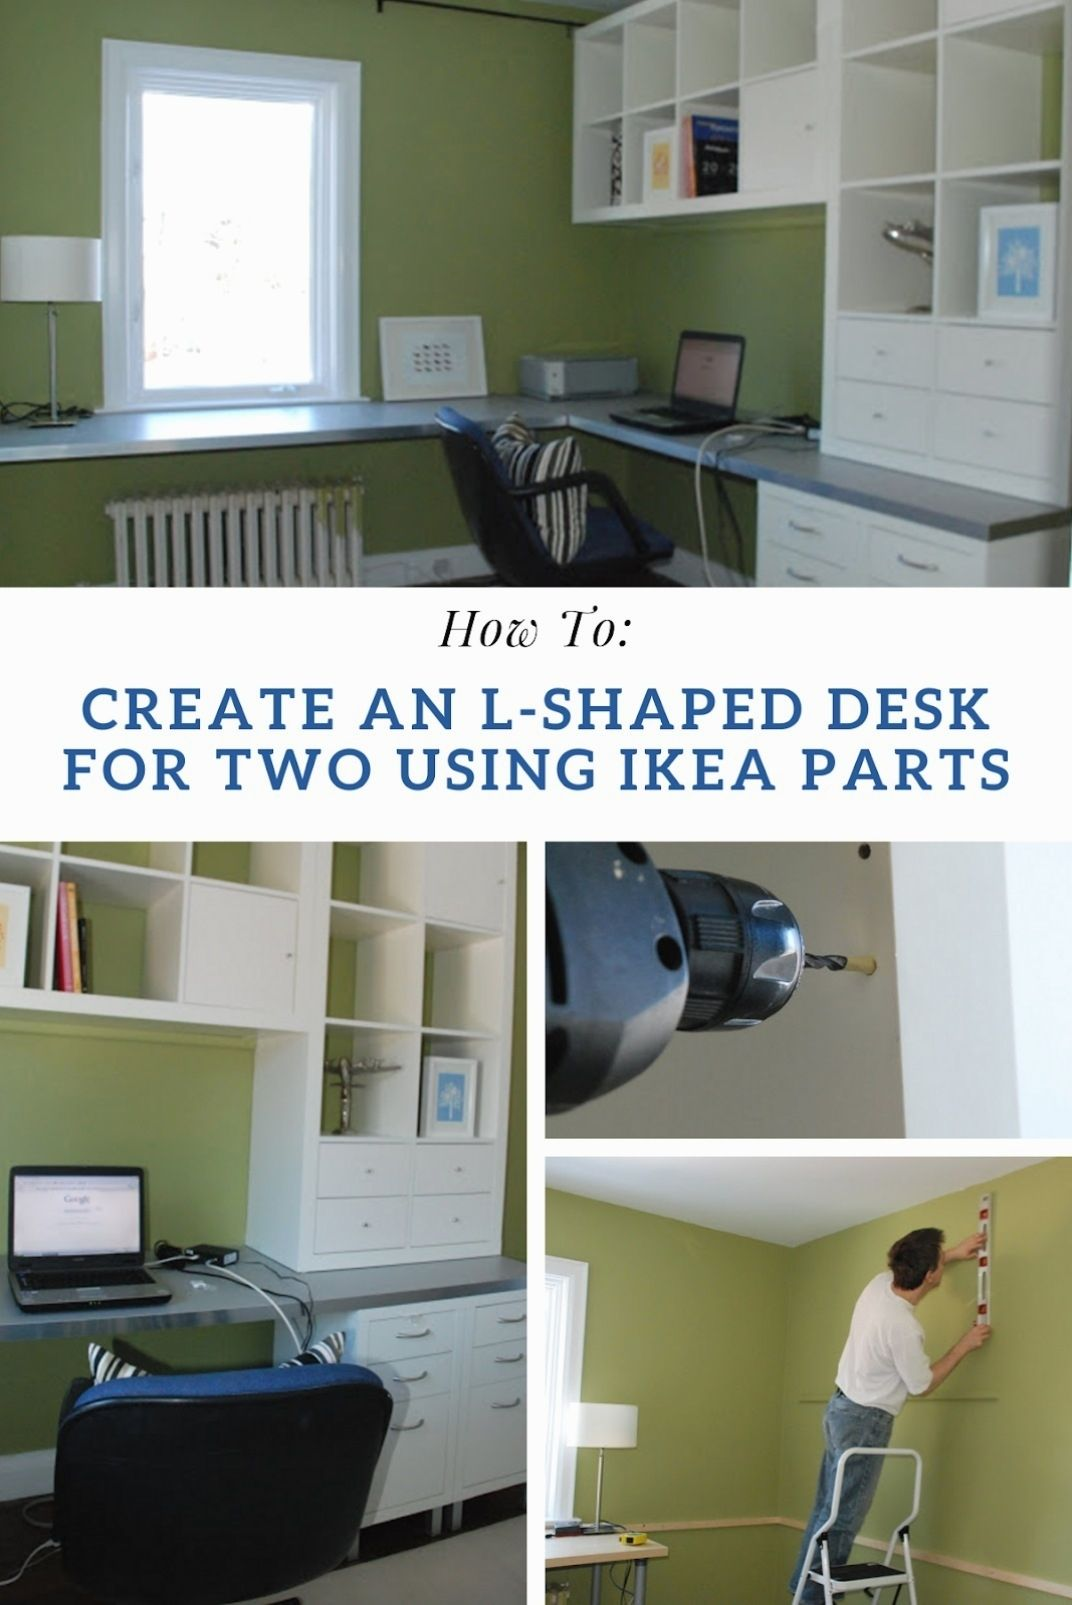 Ikea L Form Schreibtisch Ea Home Office Fice Fur Zwei Ea Office Hack Ea Expedit An Den Wanden In 2020 Ikea Home Office Ikea L Shaped Desk Ikea Office Hack